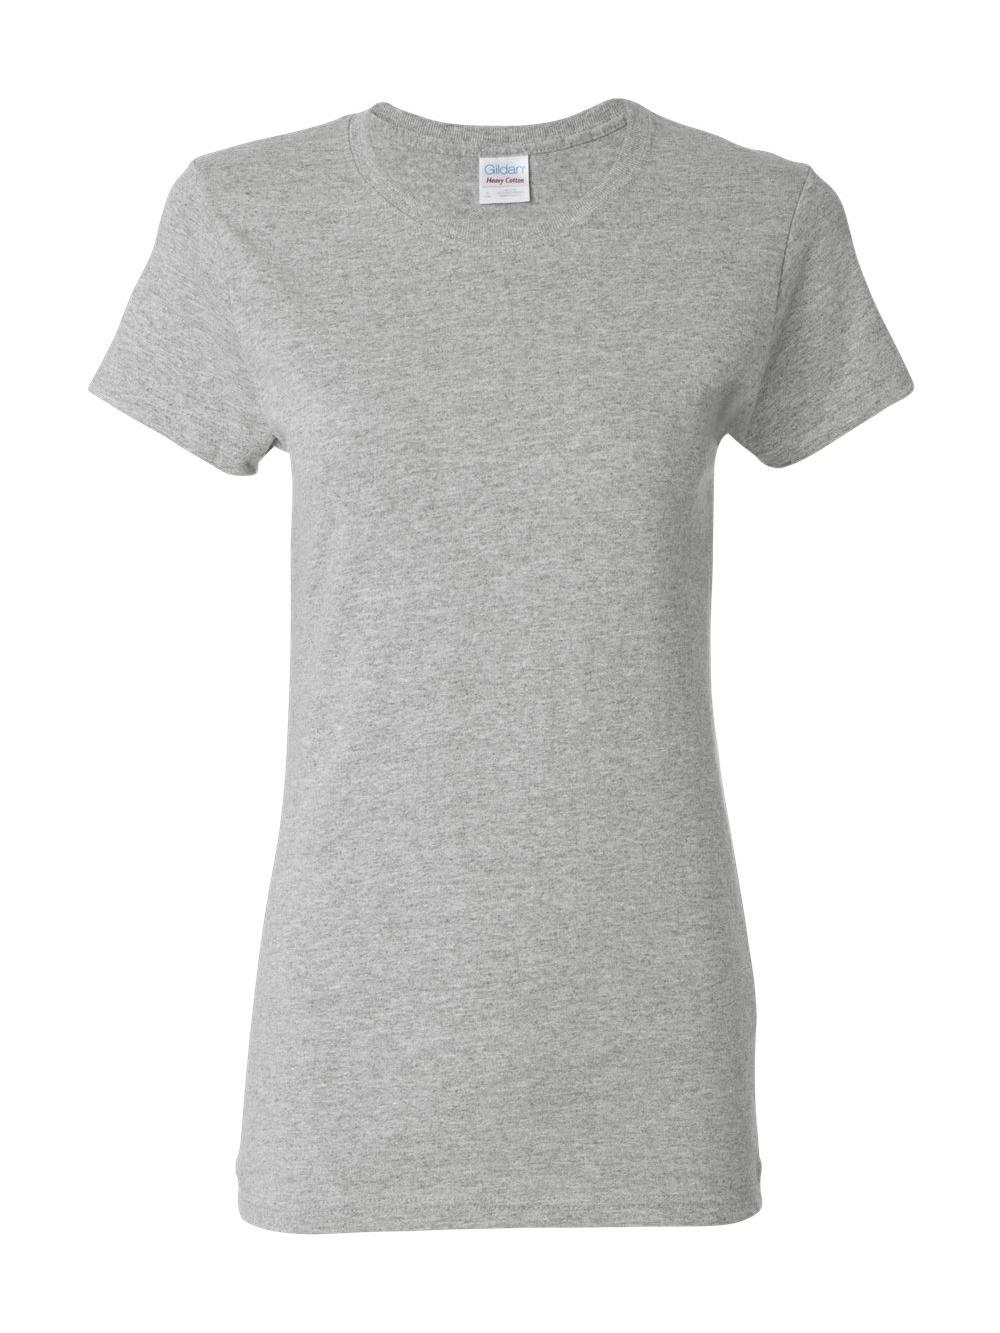 Gildan-Heavy-Cotton-Women-039-s-Short-Sleeve-T-Shirt-5000L thumbnail 9